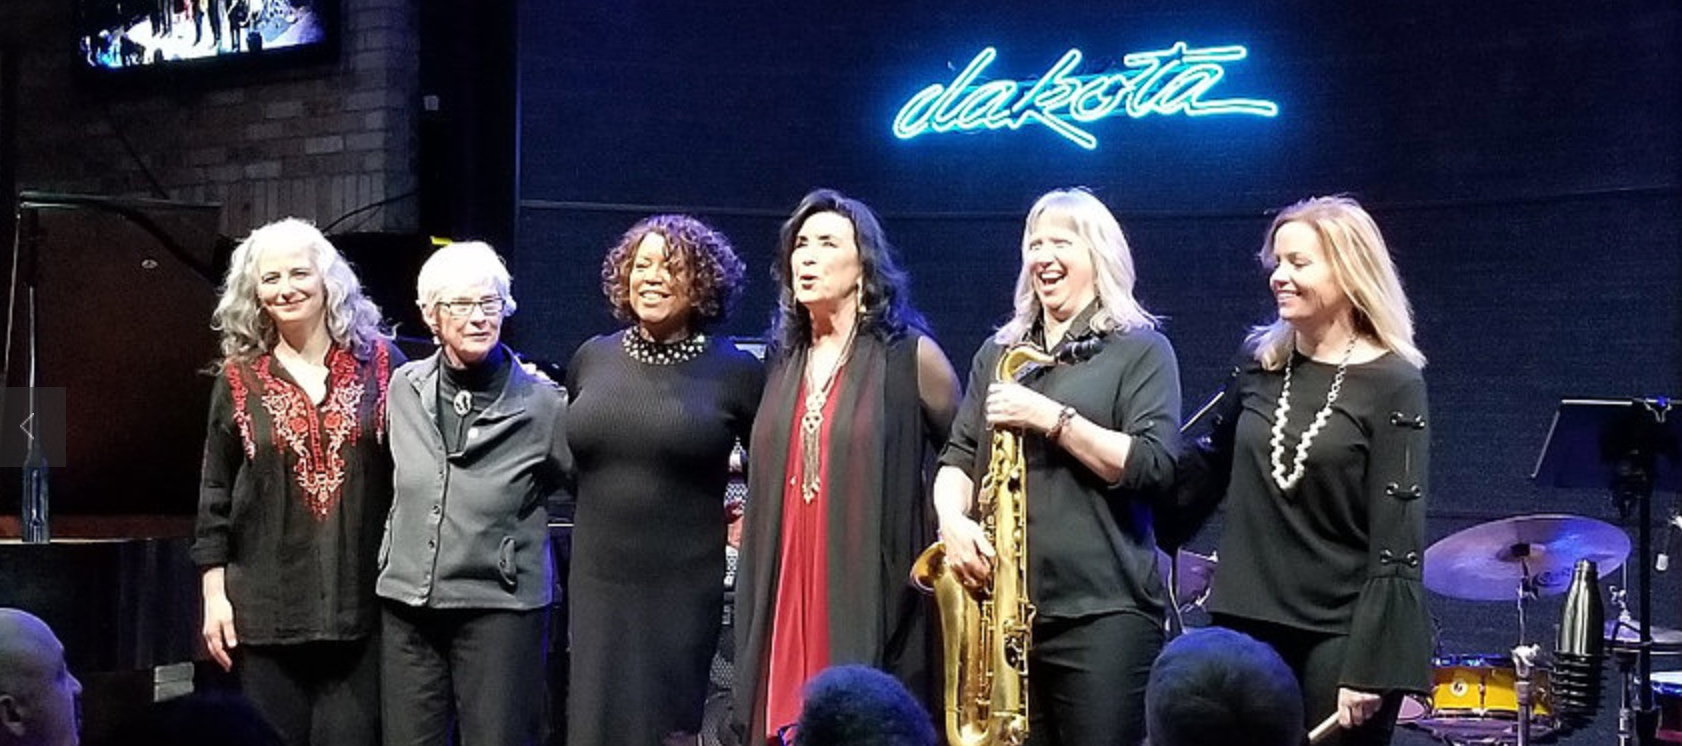 Jazz Women All Stars L to R - Mary Louise Knutson, Joan Griffith, Yolande Bruce (previous guest vocalist), Patty Peterson, Sue Orfield, Sheila Earley